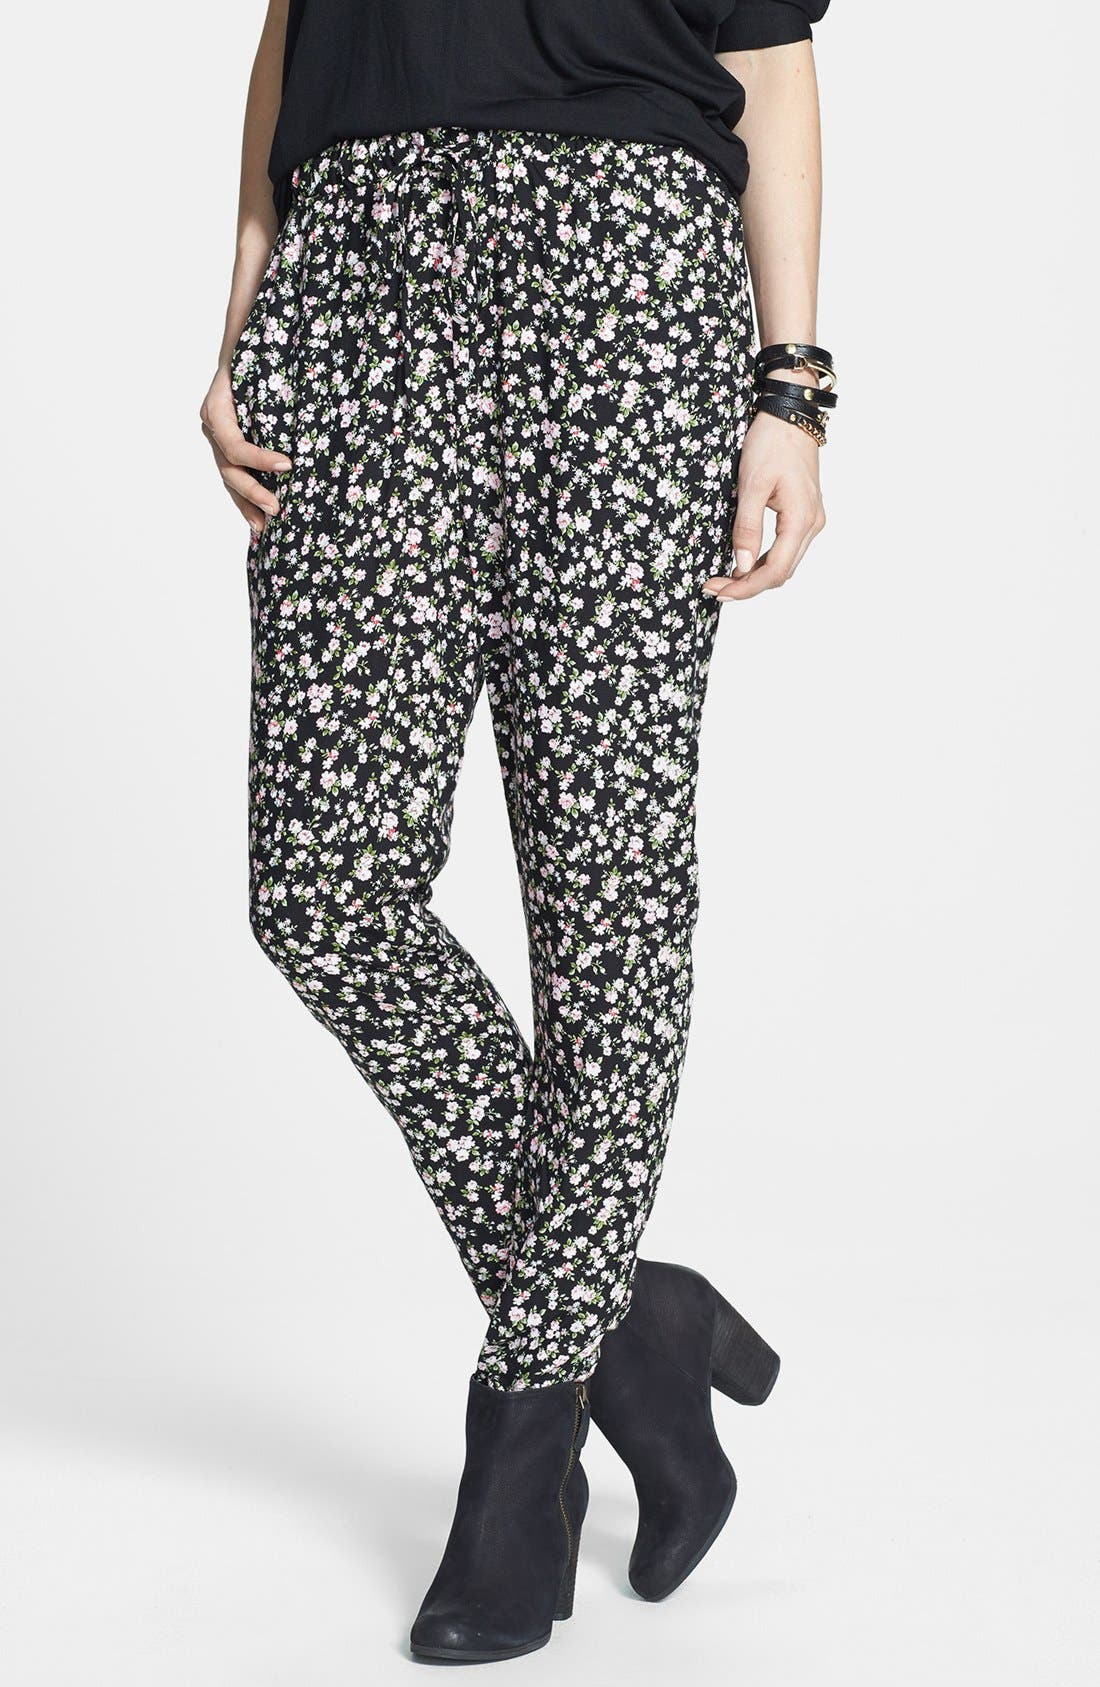 Alternate Image 1 Selected - h.i.p. Print Track Pants (Juniors) (Online Only)